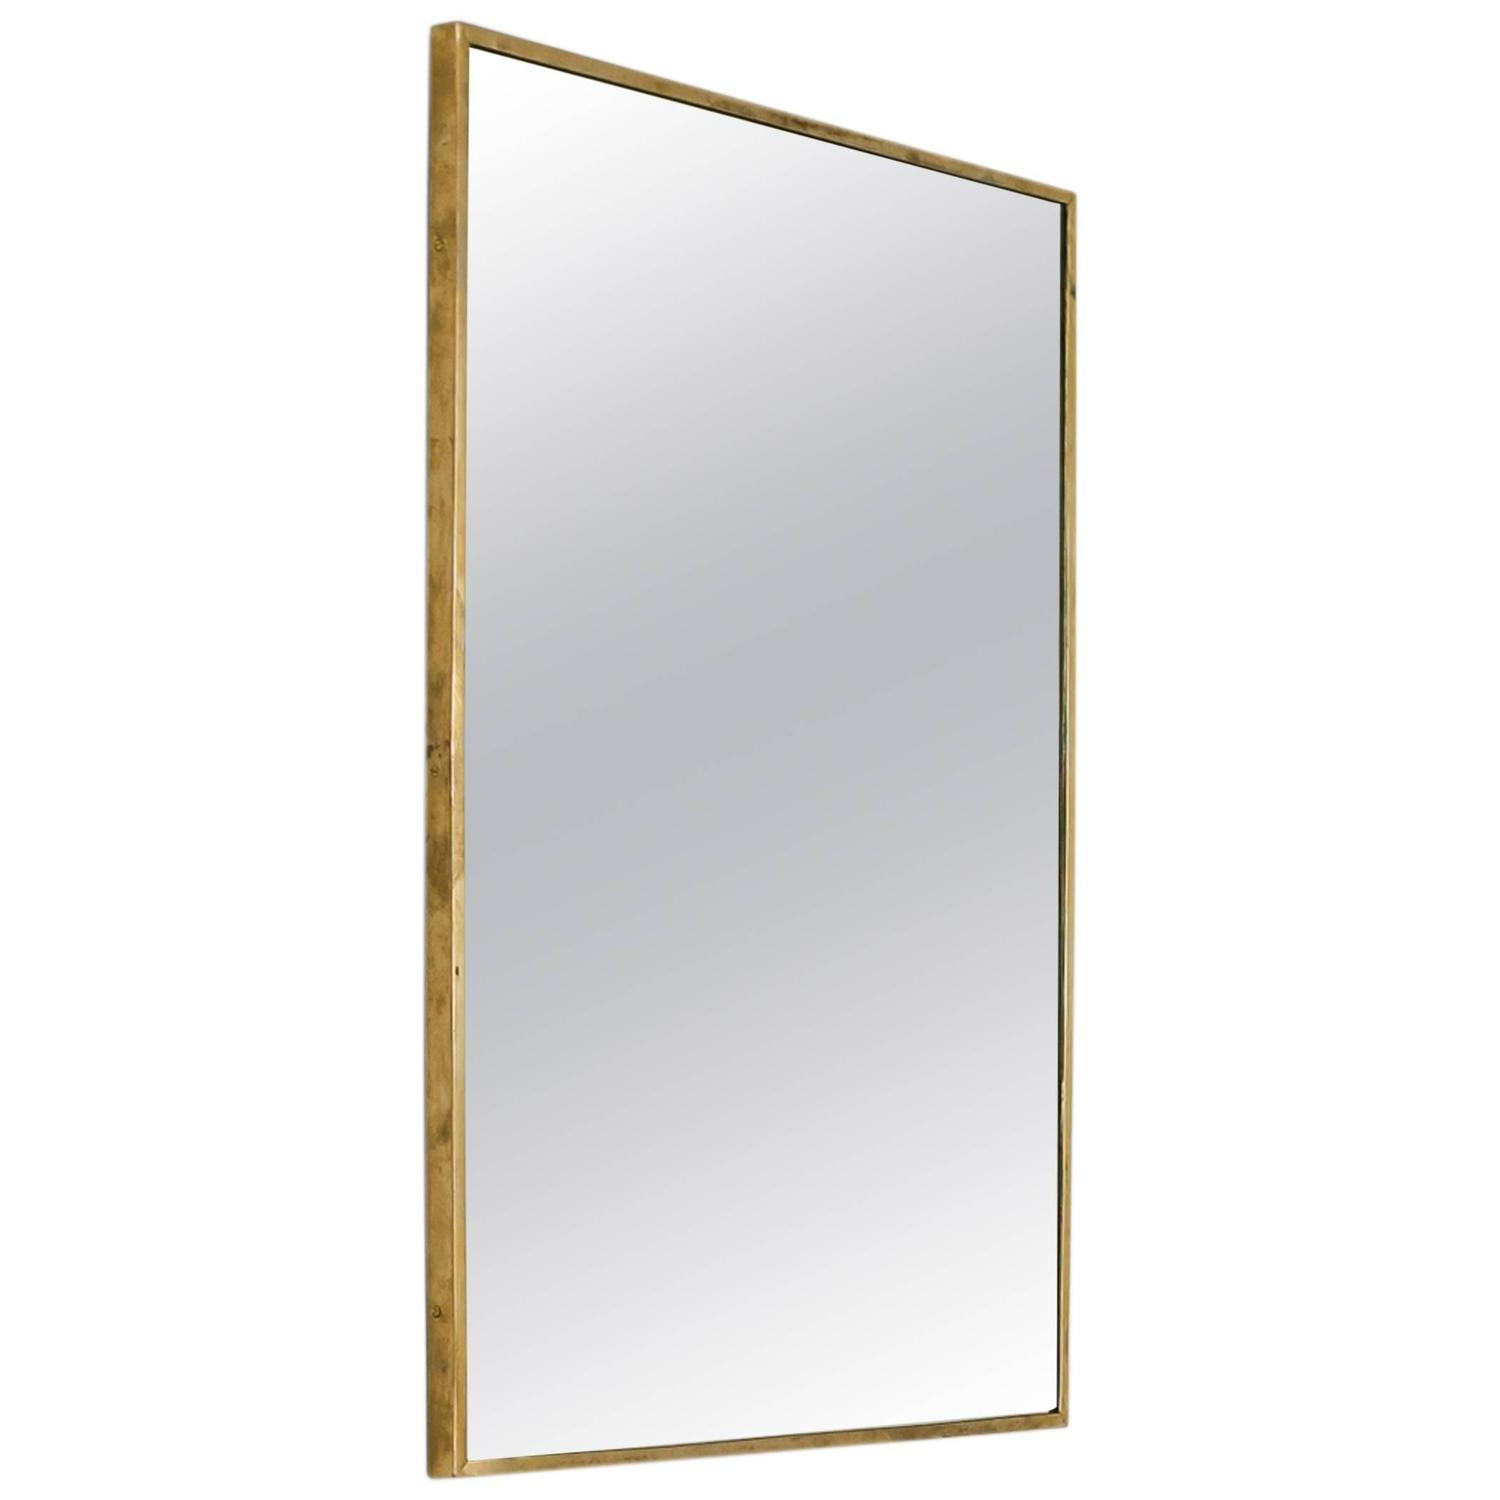 Rectangular Wall Mirror large rectangular brass wall mirror, italy, 1950s for sale at 1stdibs